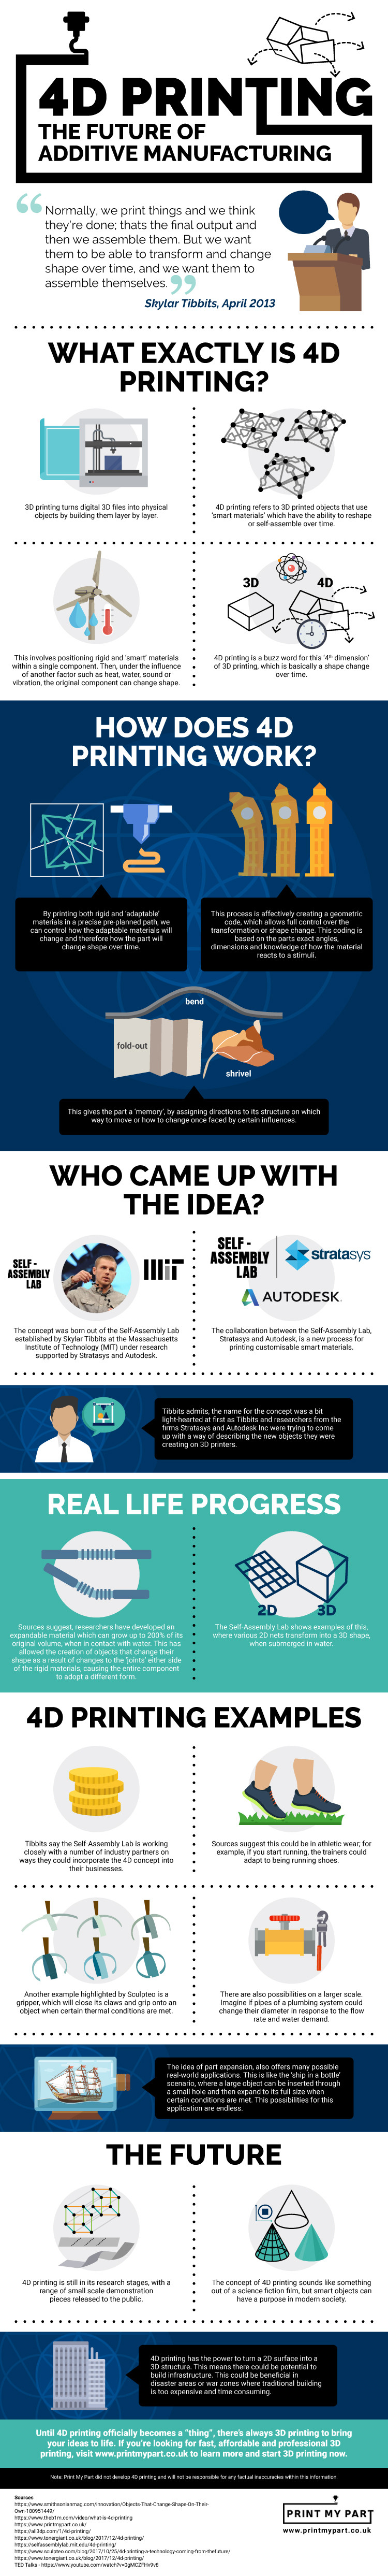 Infographic about 4D printing